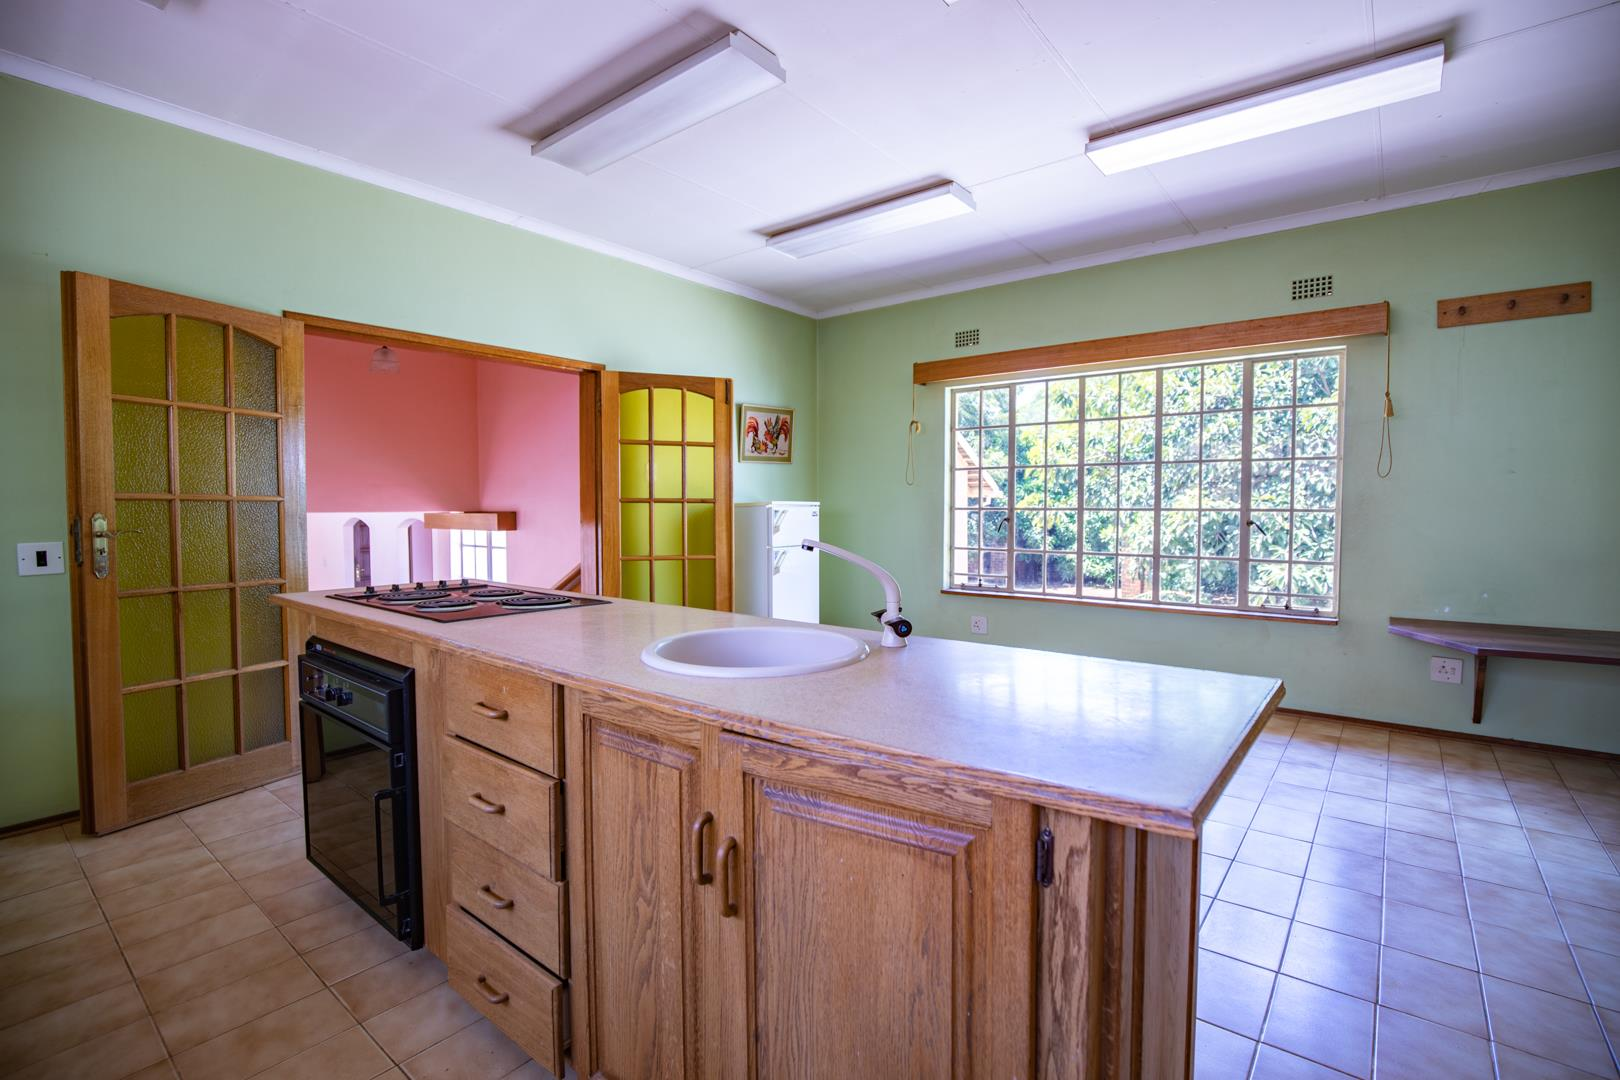 3 Bedroom House For Sale in Lydiana